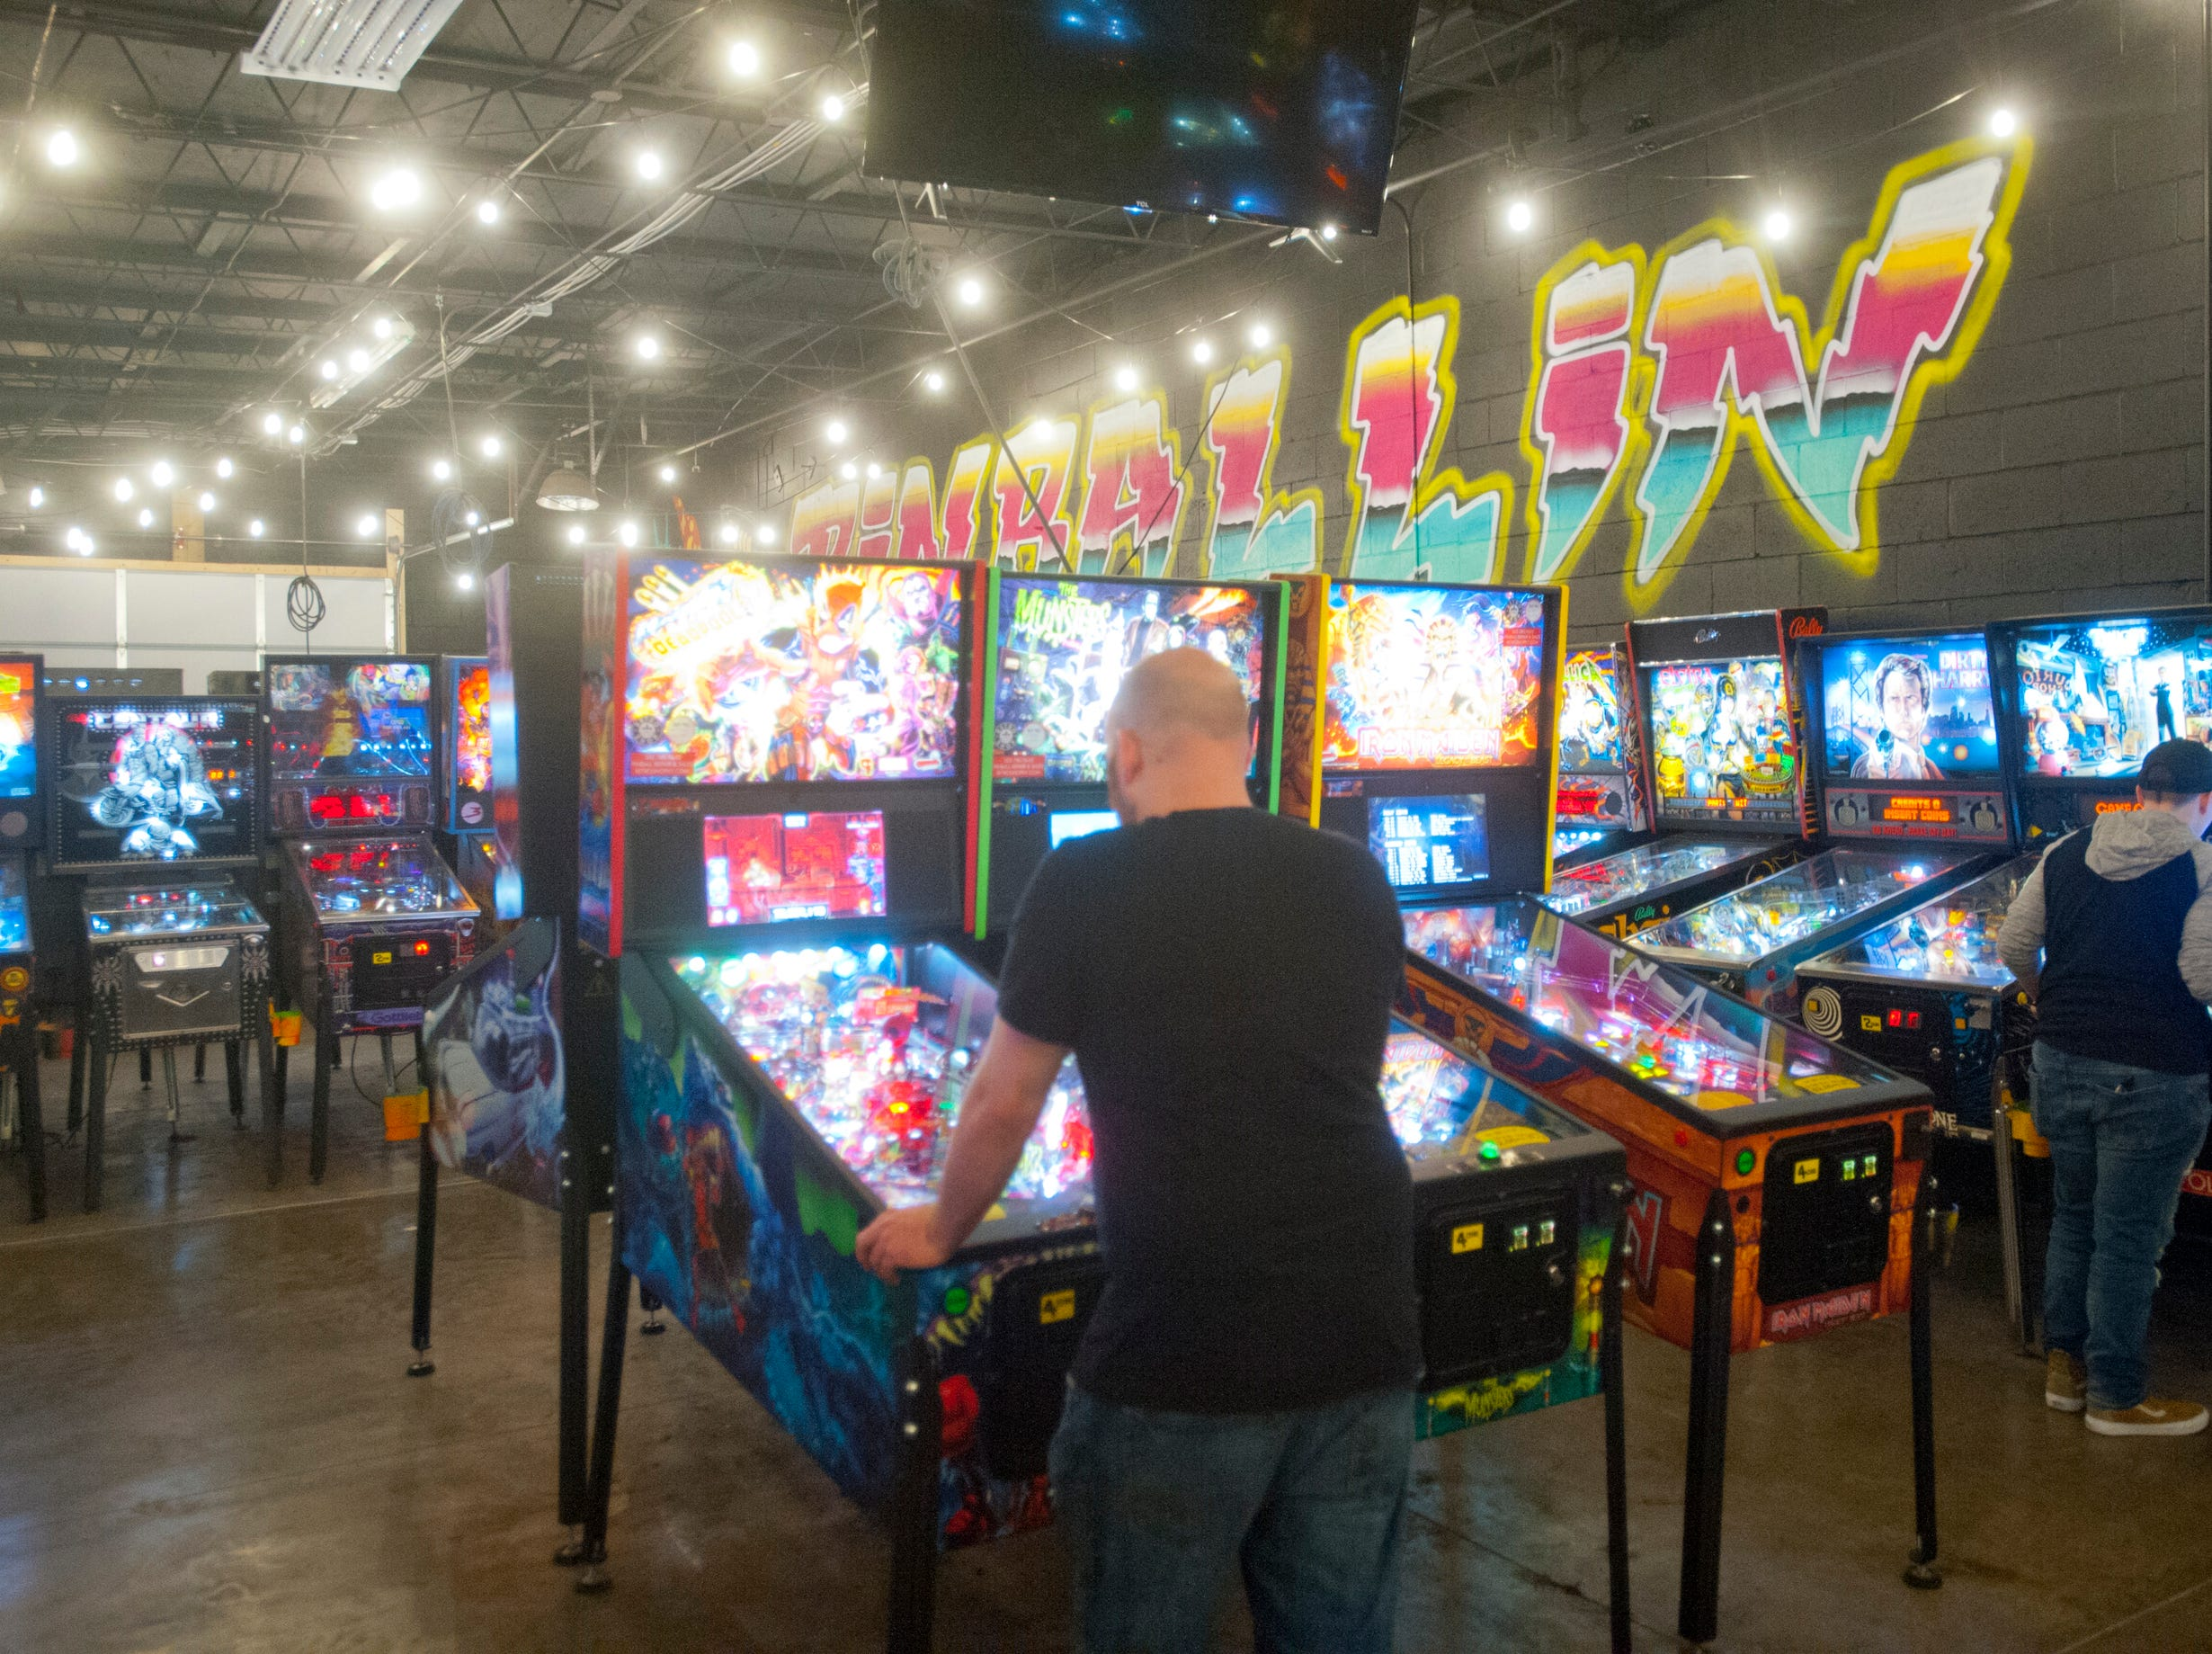 A patron plays in one of the arcade rooms of the eatery.14 March 2019